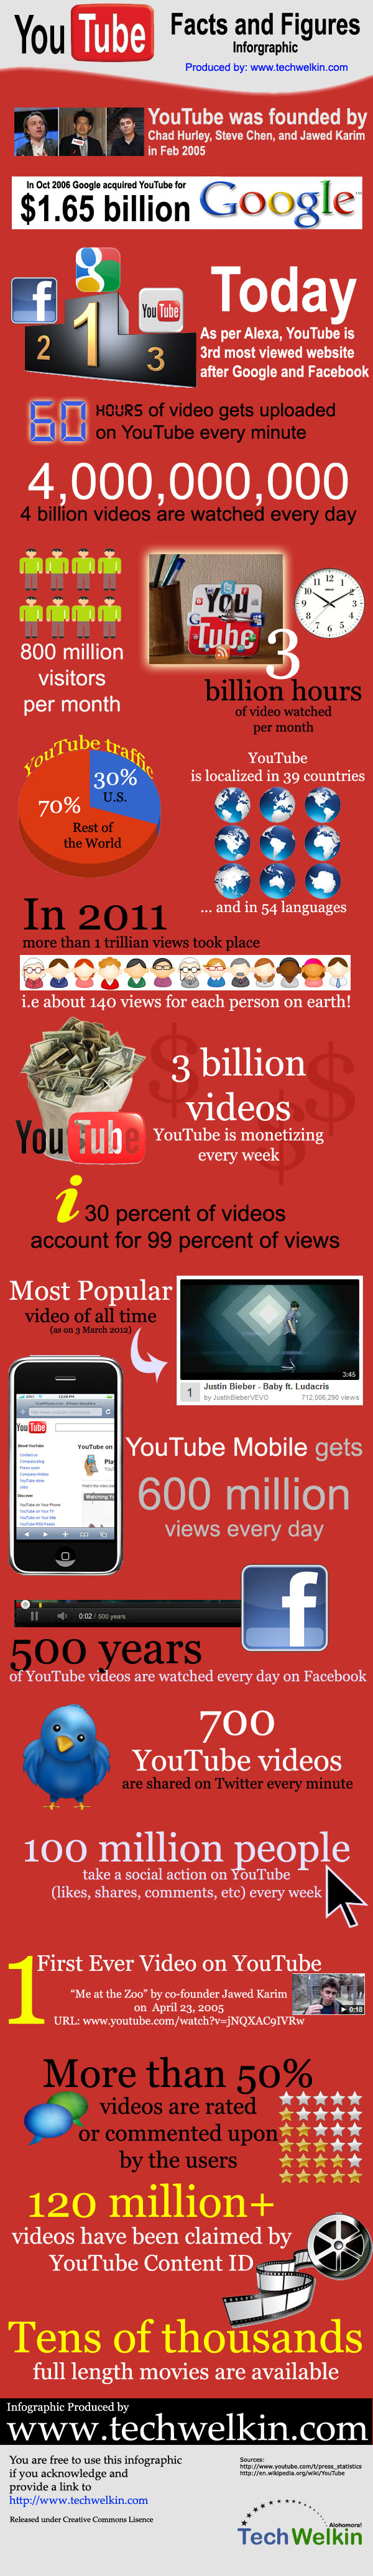 youtube facts figures by techwelkin